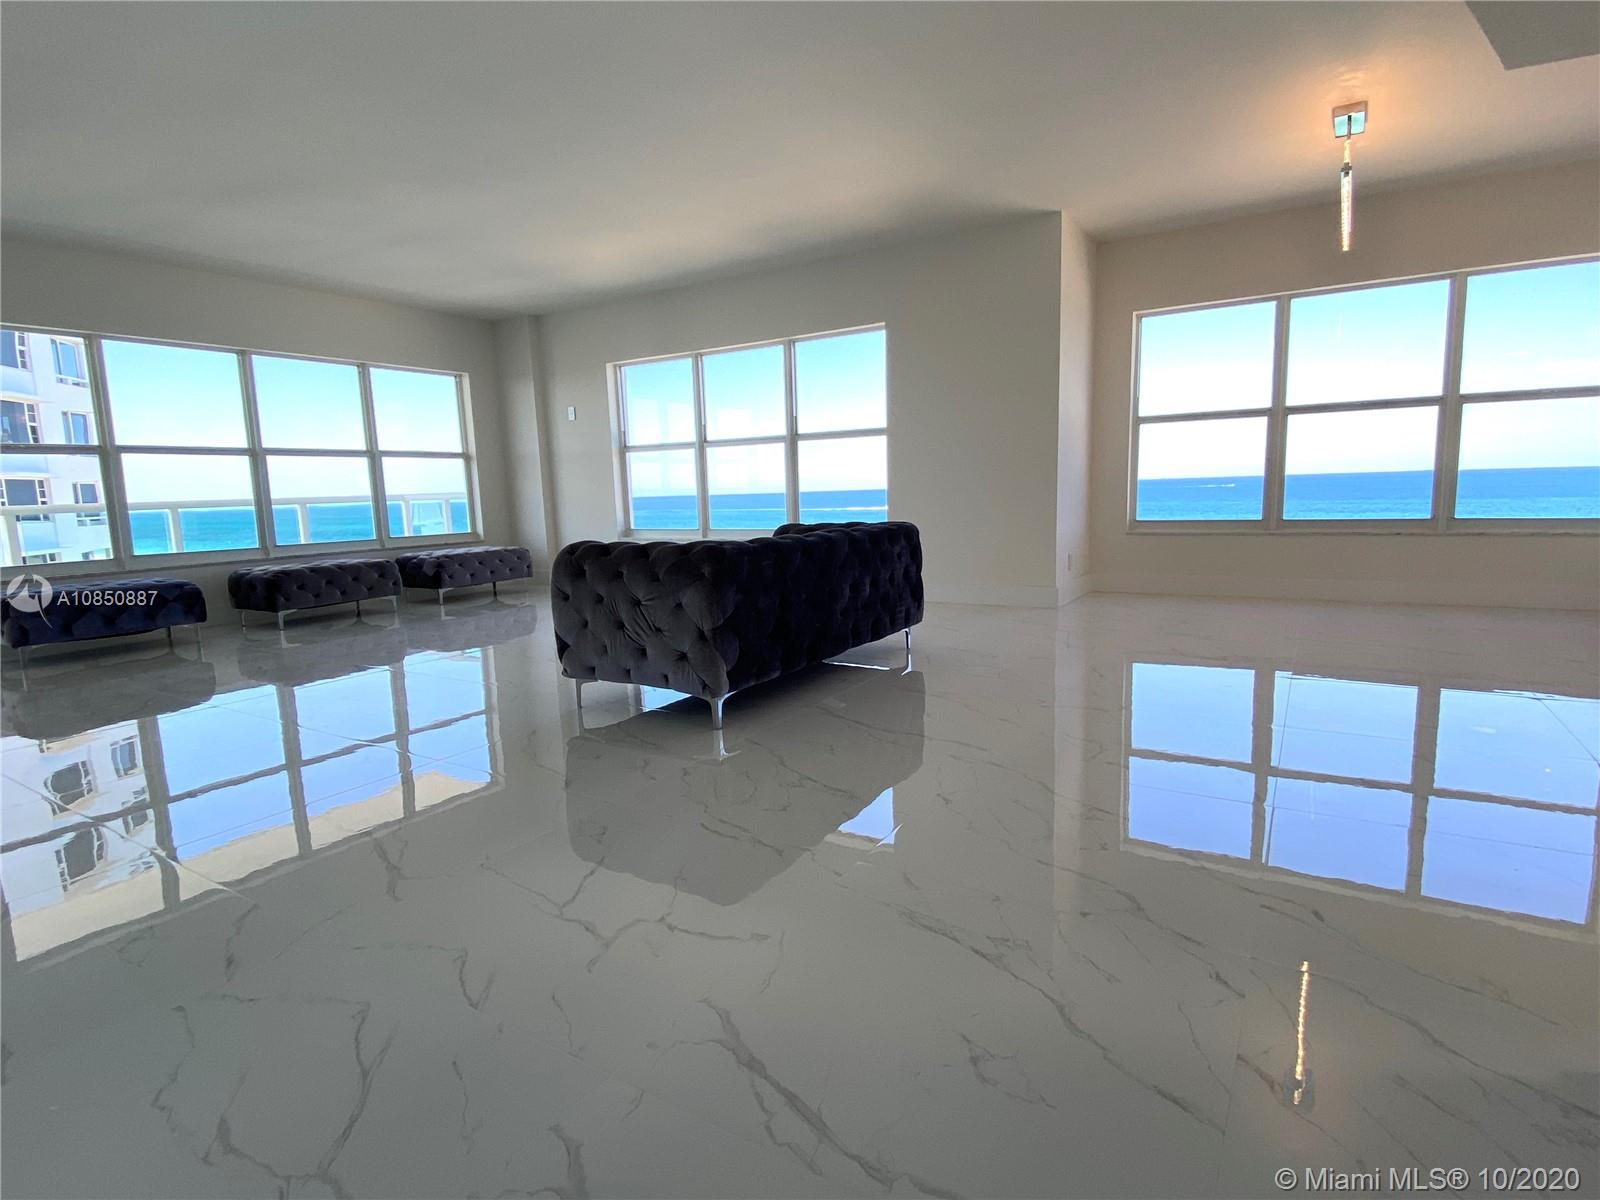 A Must See!!! One of A Kind. PANORAMIC stunning FRONT ocean views from this 9th floor 3 bedroom, 2.5 bathroom luxurious FULLY RENOVATED unit equipped with OPEN EUROPEAN KITCHEN with nice countertops, brand NEW APPLIANCES and NEW CARRARA PORCELAIN TILE FLOORS throughout the unit. BALCONY recently Updated. IMPACT Windows. 2 GARAGES. 2115 sqft just ready to enjoy it !!